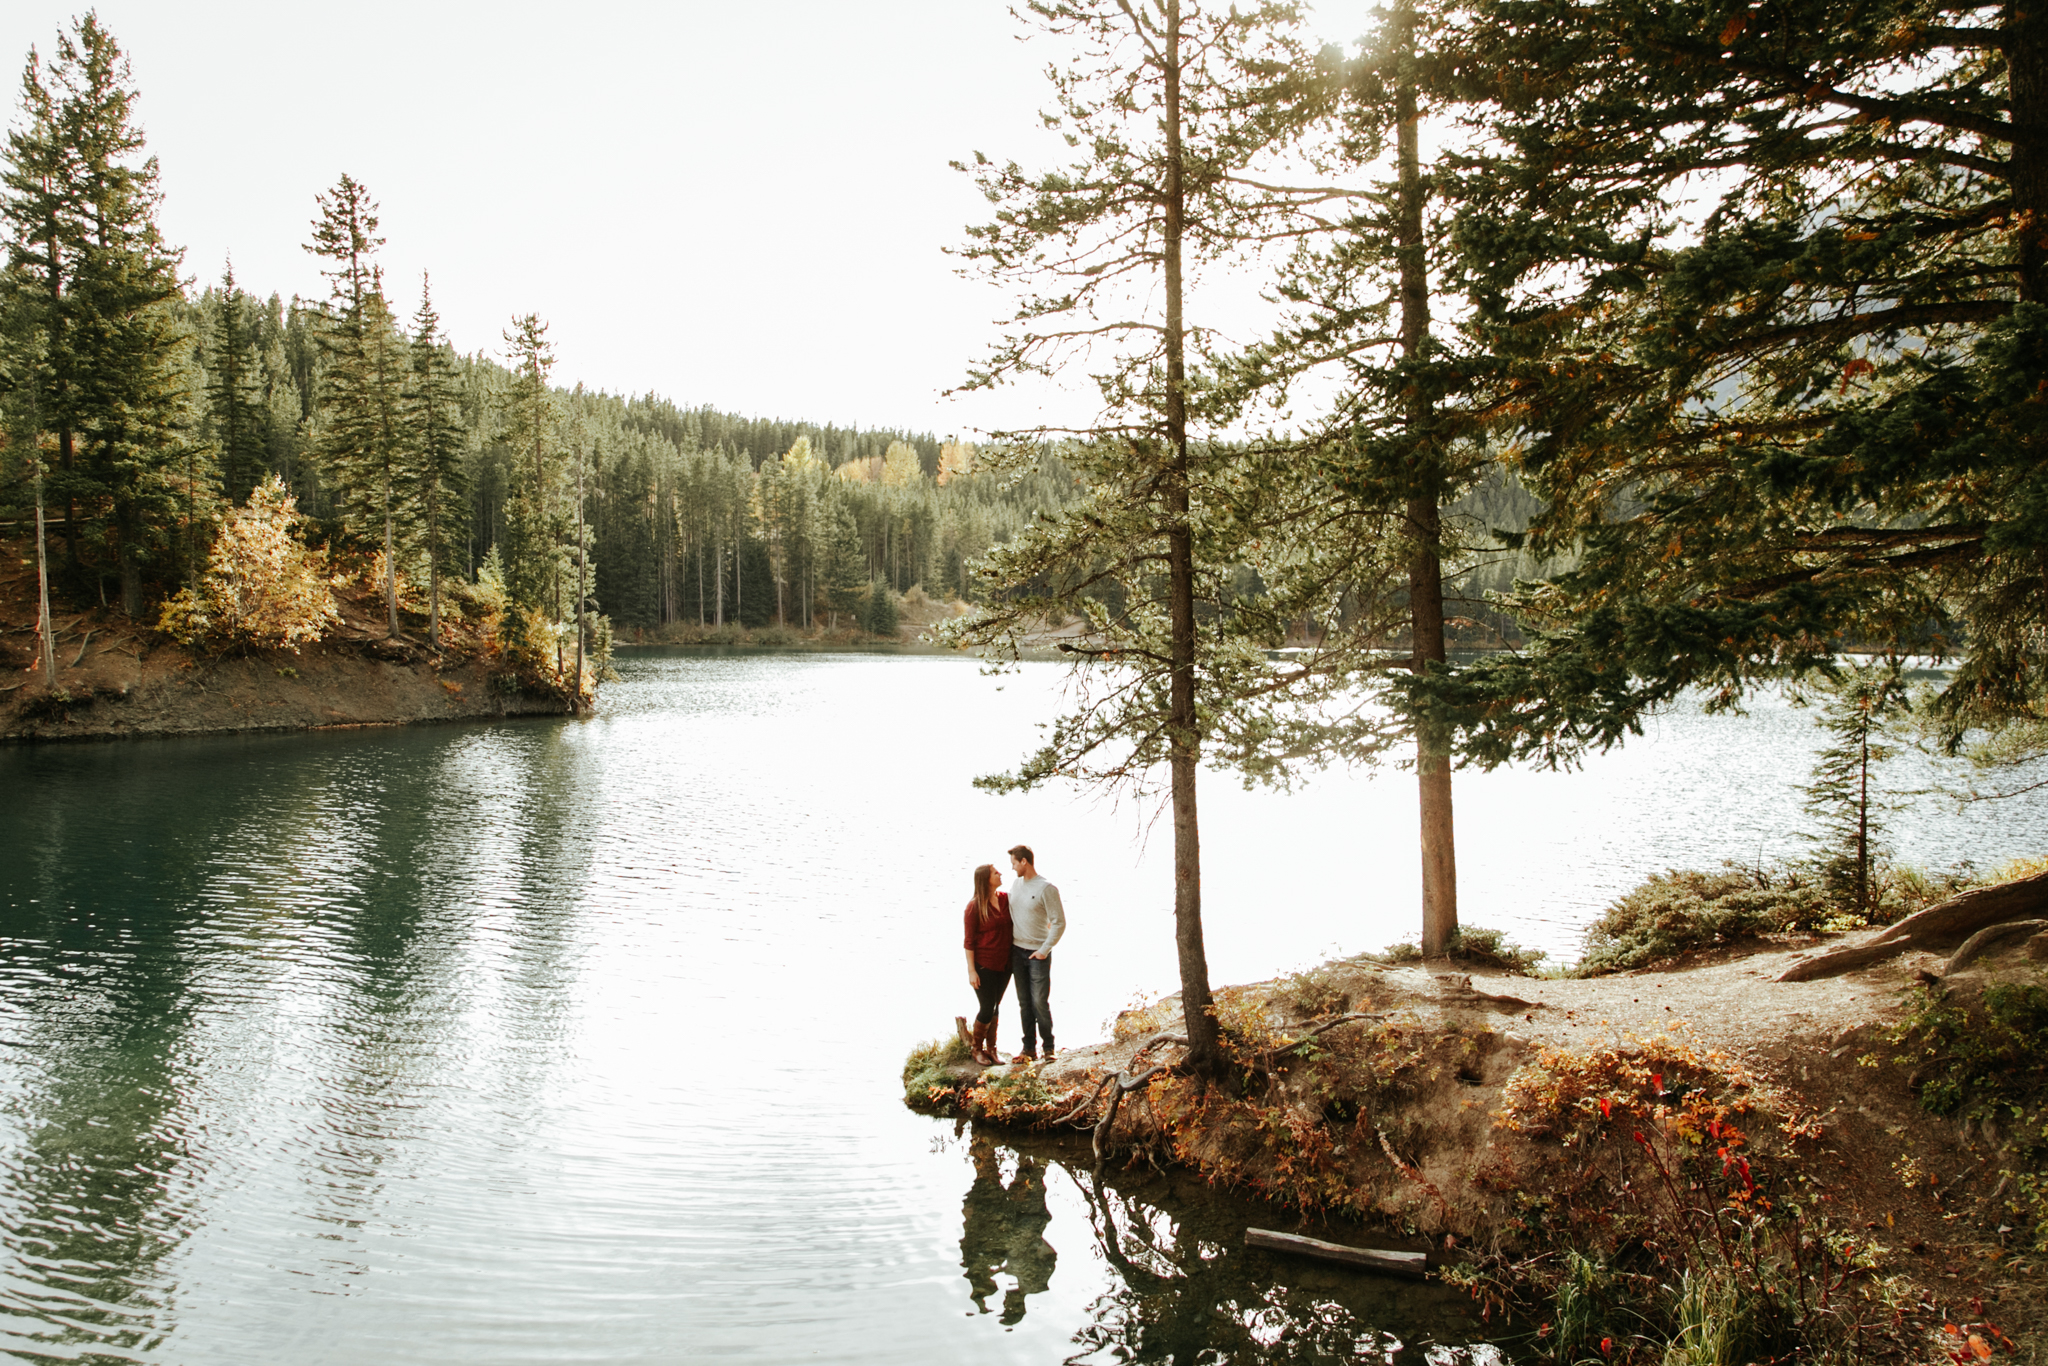 lethbridge-photographer-love-and-be-loved-photography-crowsnest-pass-engagement-andi-philip-picture-image-photo--23.jpg